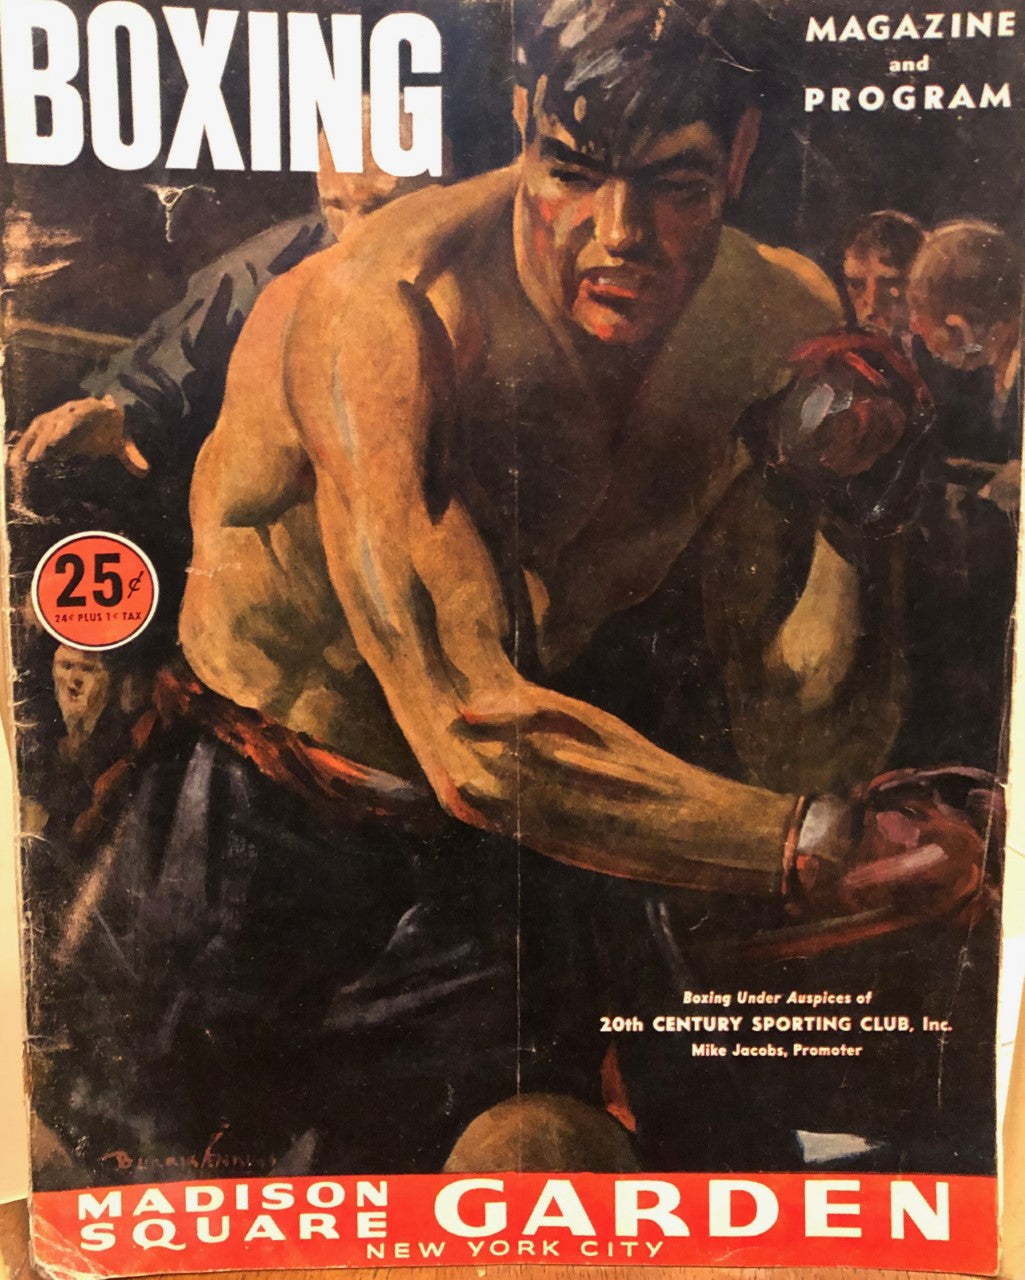 Madison Square Garden Vintage boxing magazine and program